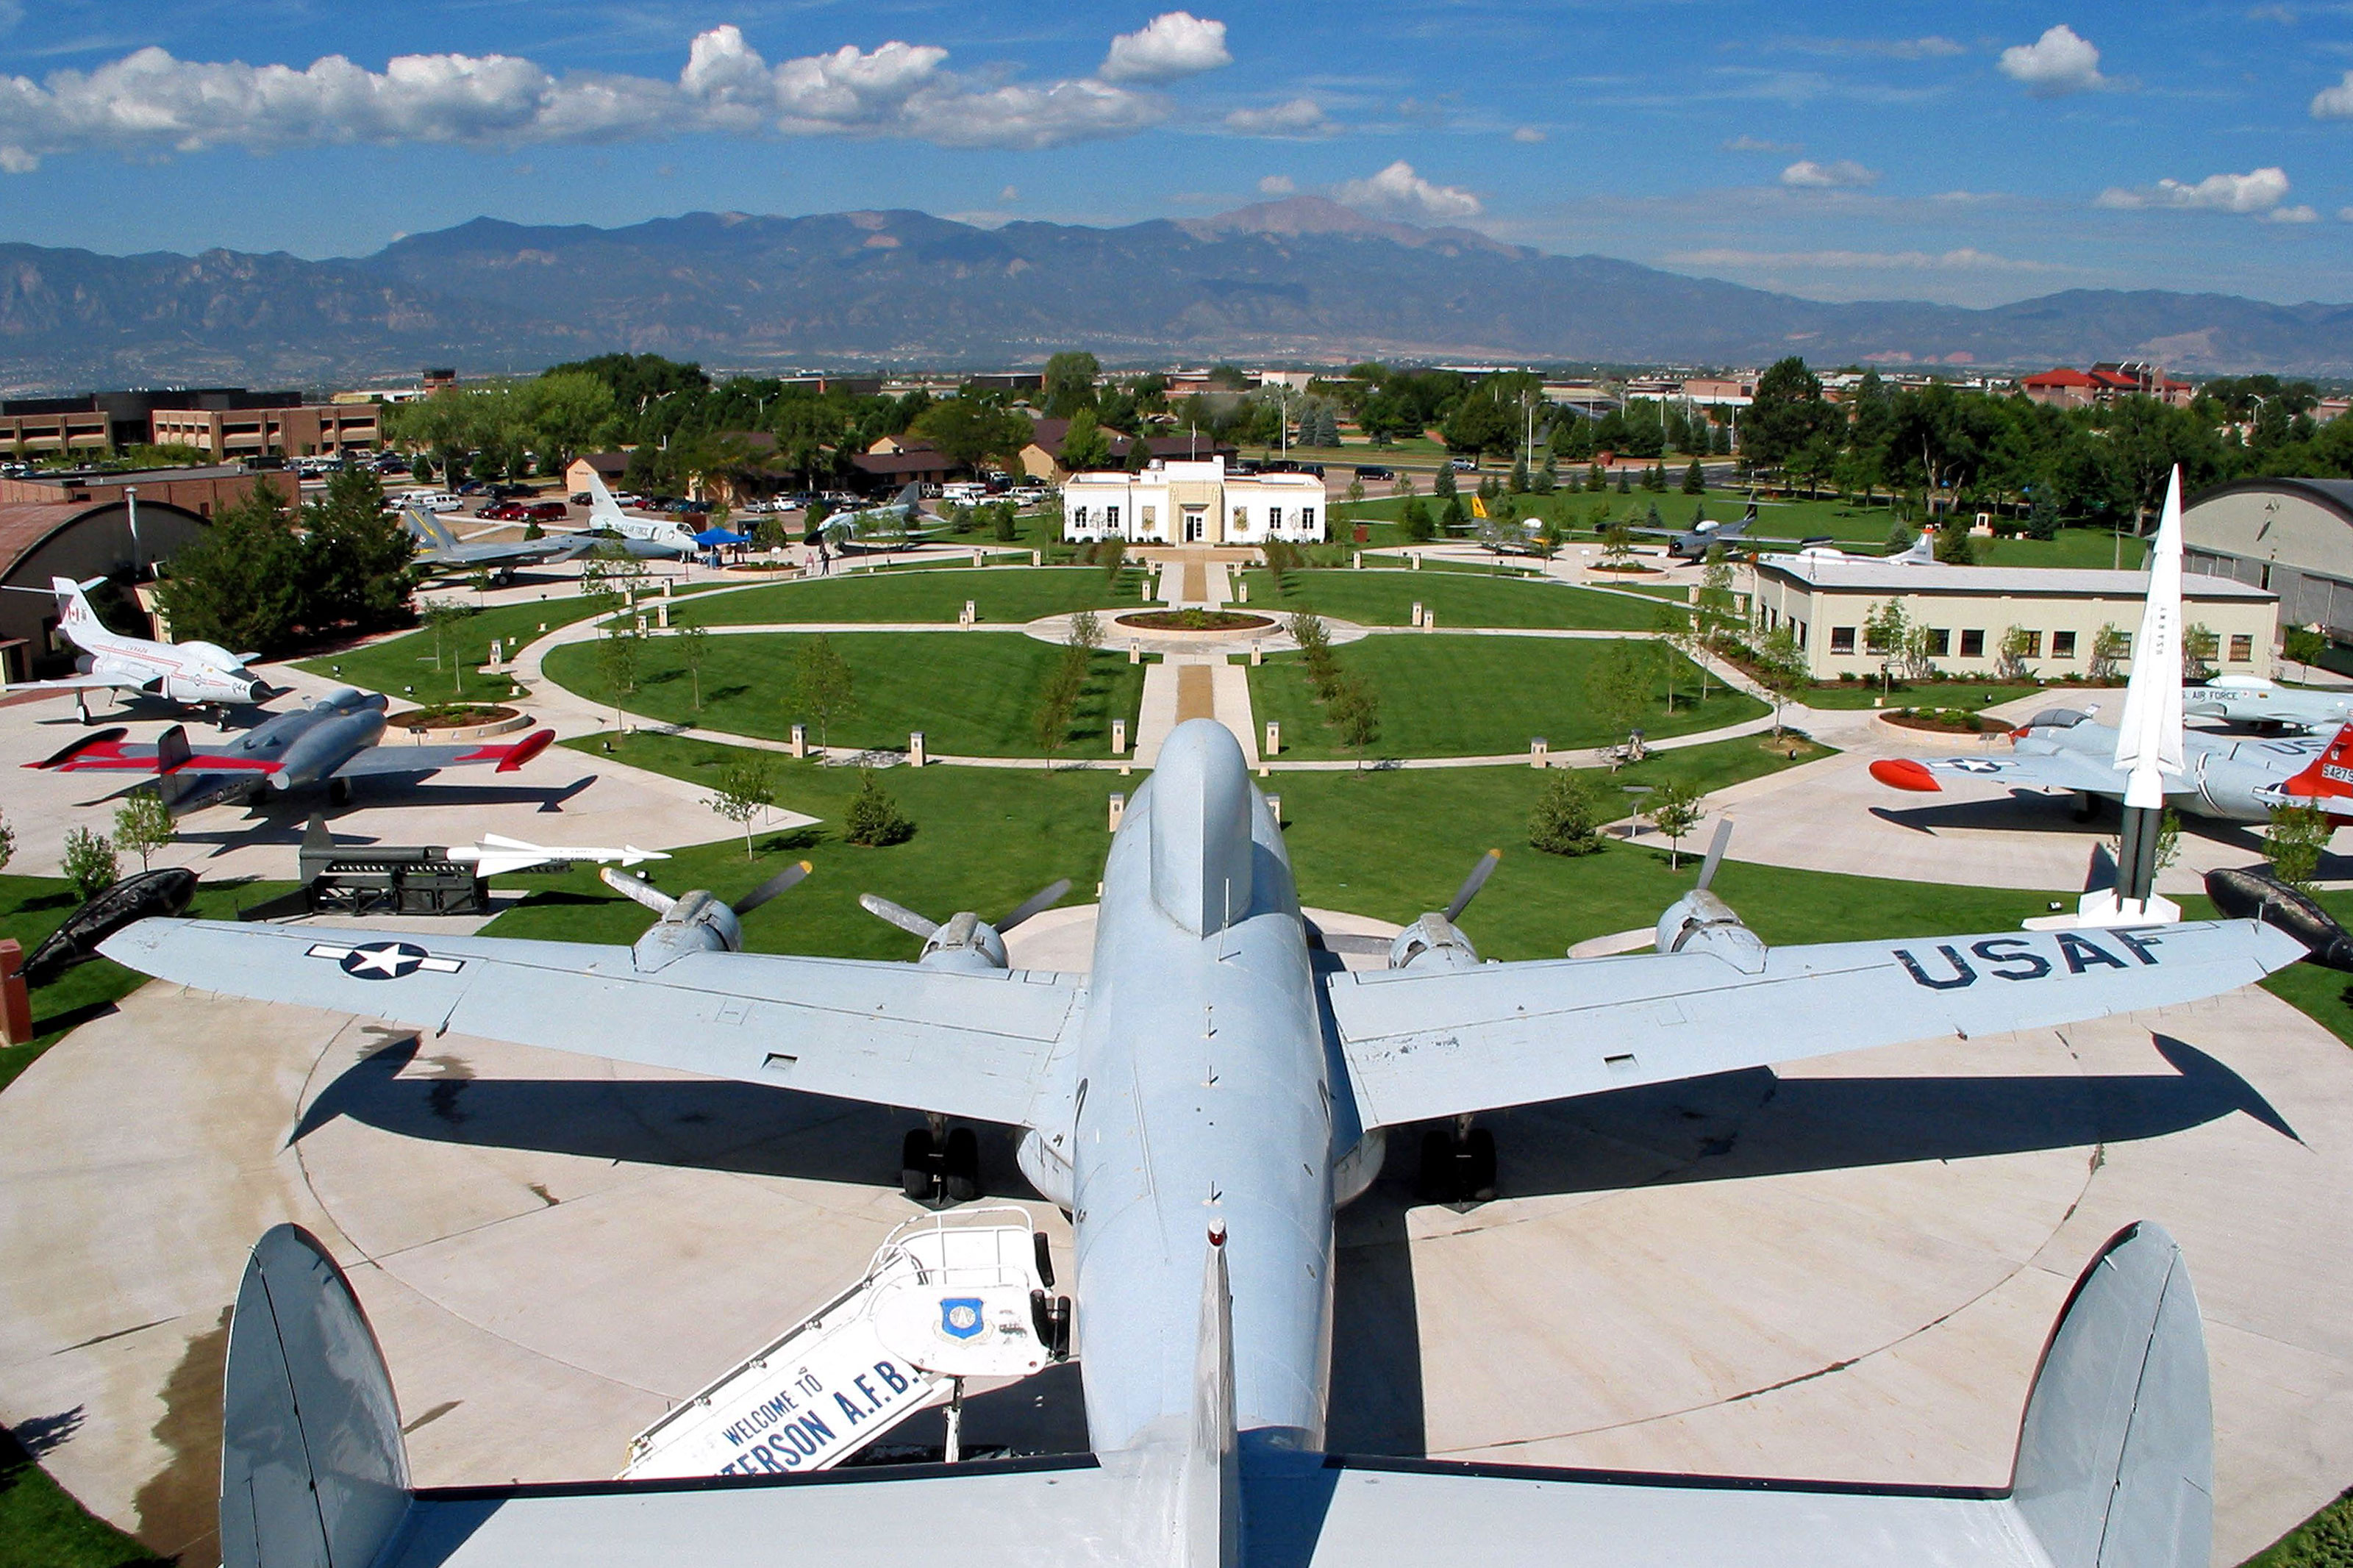 Pikes Peak looms in the background in this aerial view of the Peterson Air and Space Museum, located on the Air Force base in Colorado Springs, Colo.